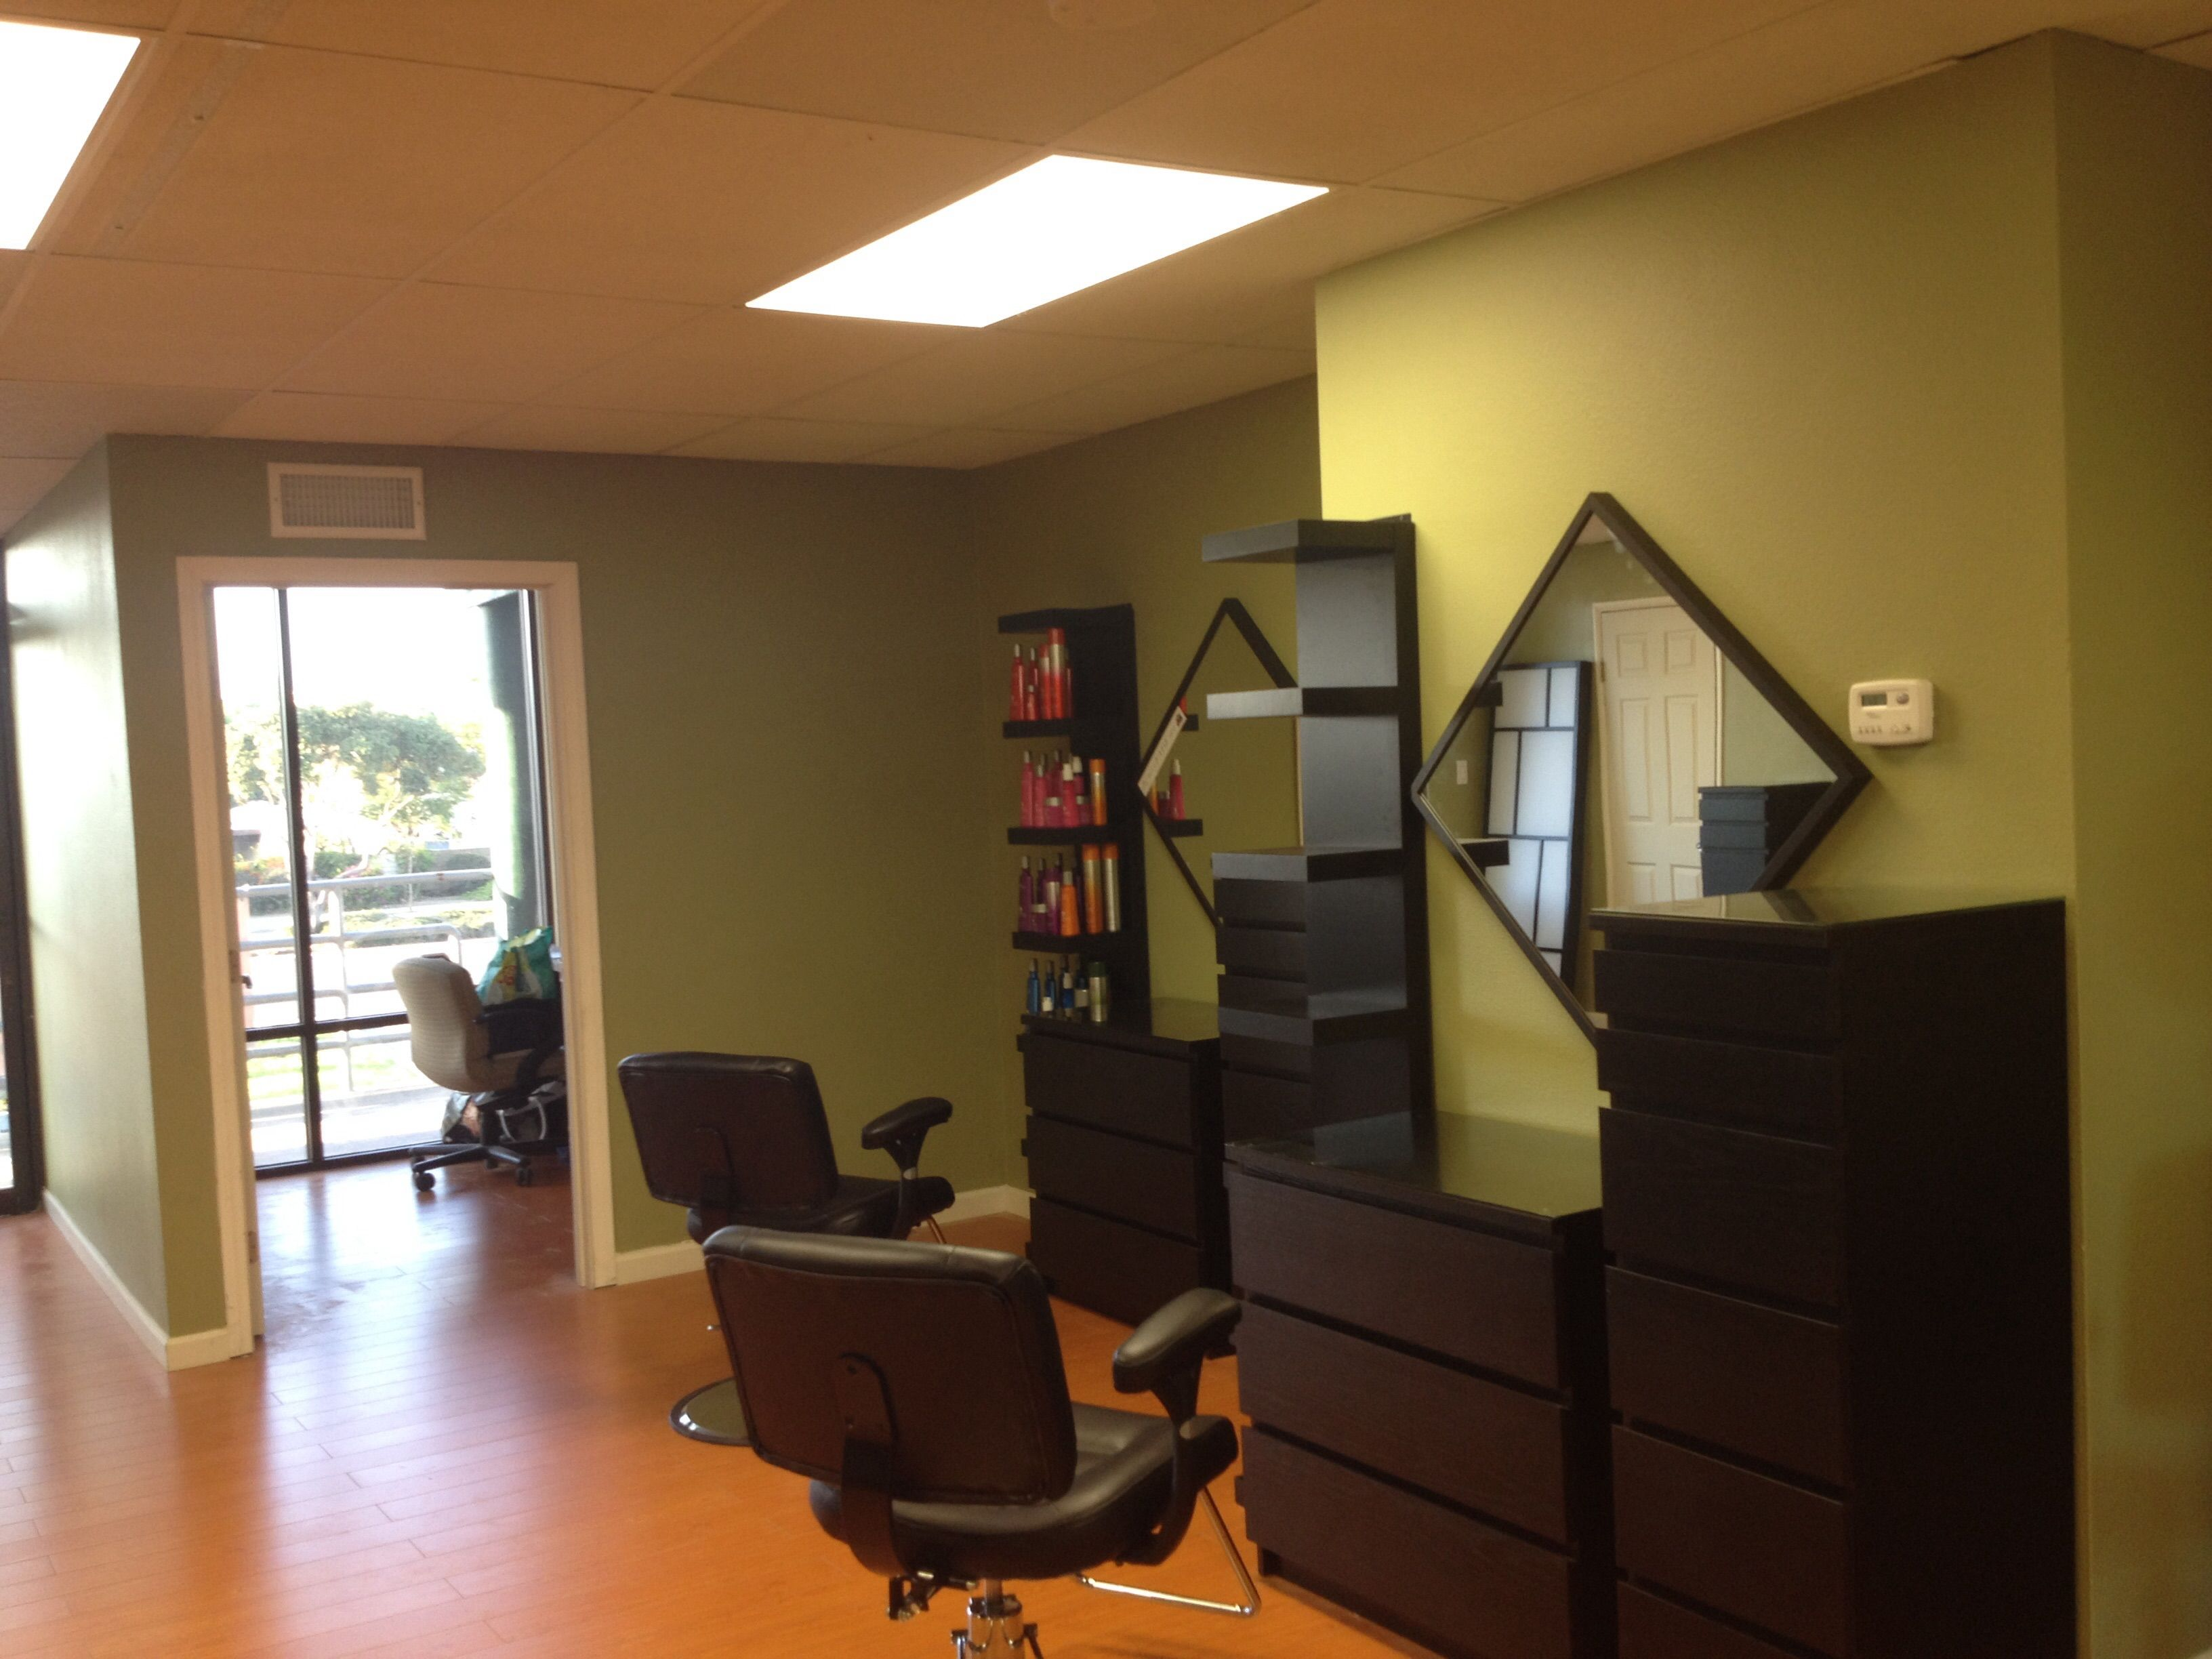 Hair stylist for booth rent new salon near downtown